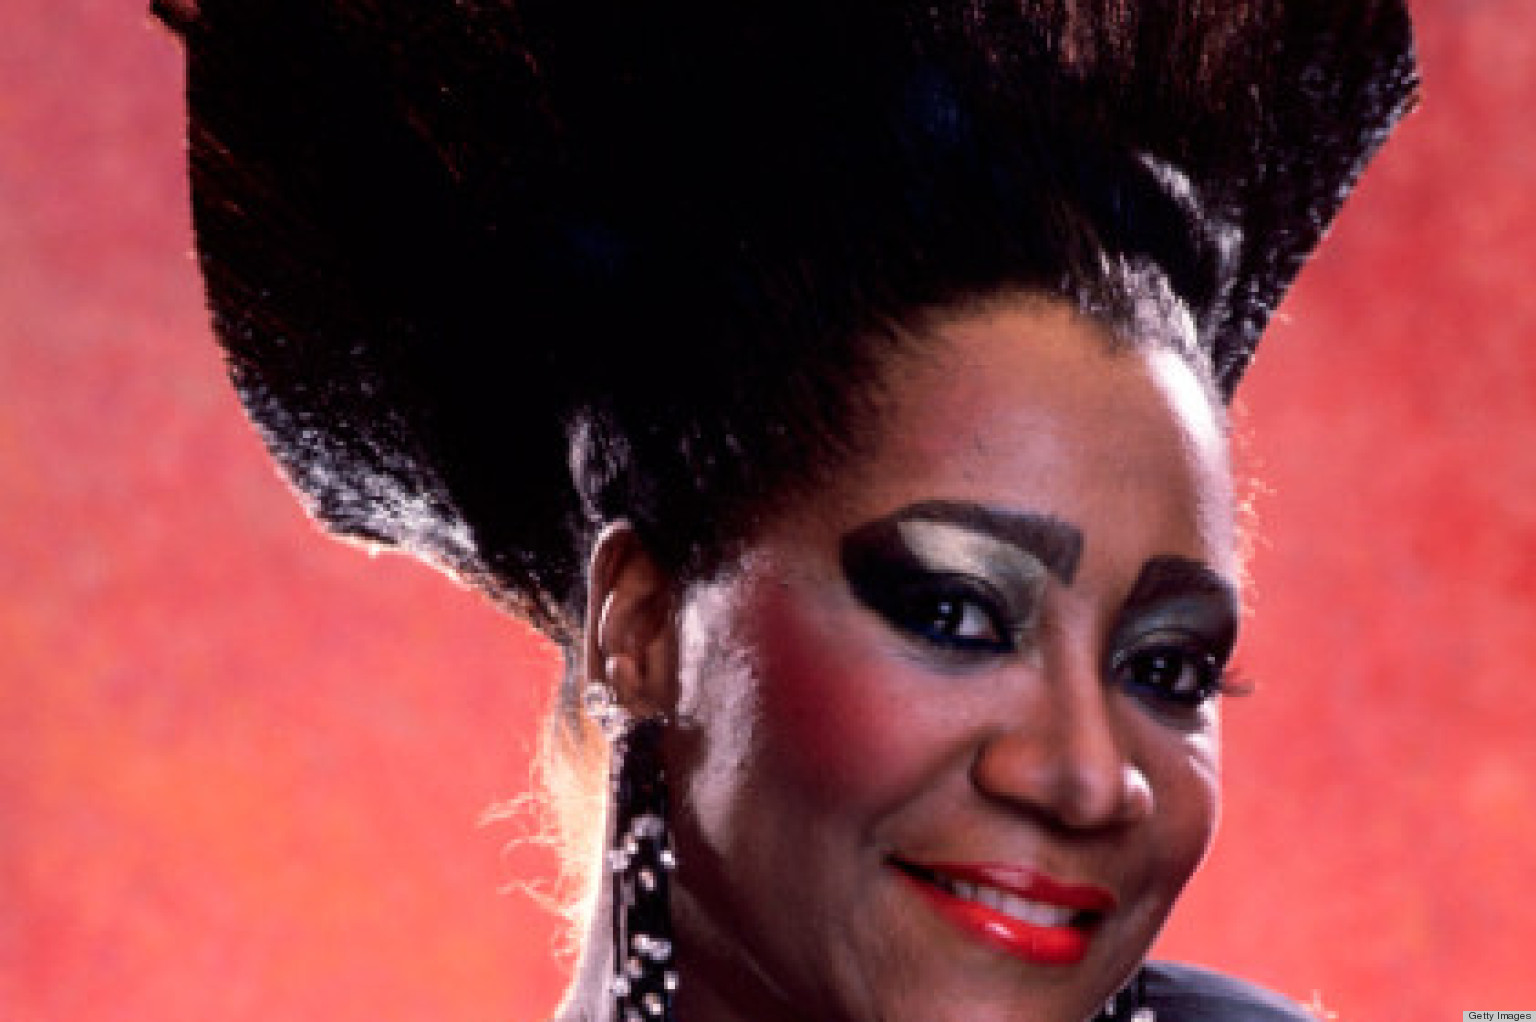 Patti Labelle Hairstyles Will Be A Thing Of The Past And Here's Why ...